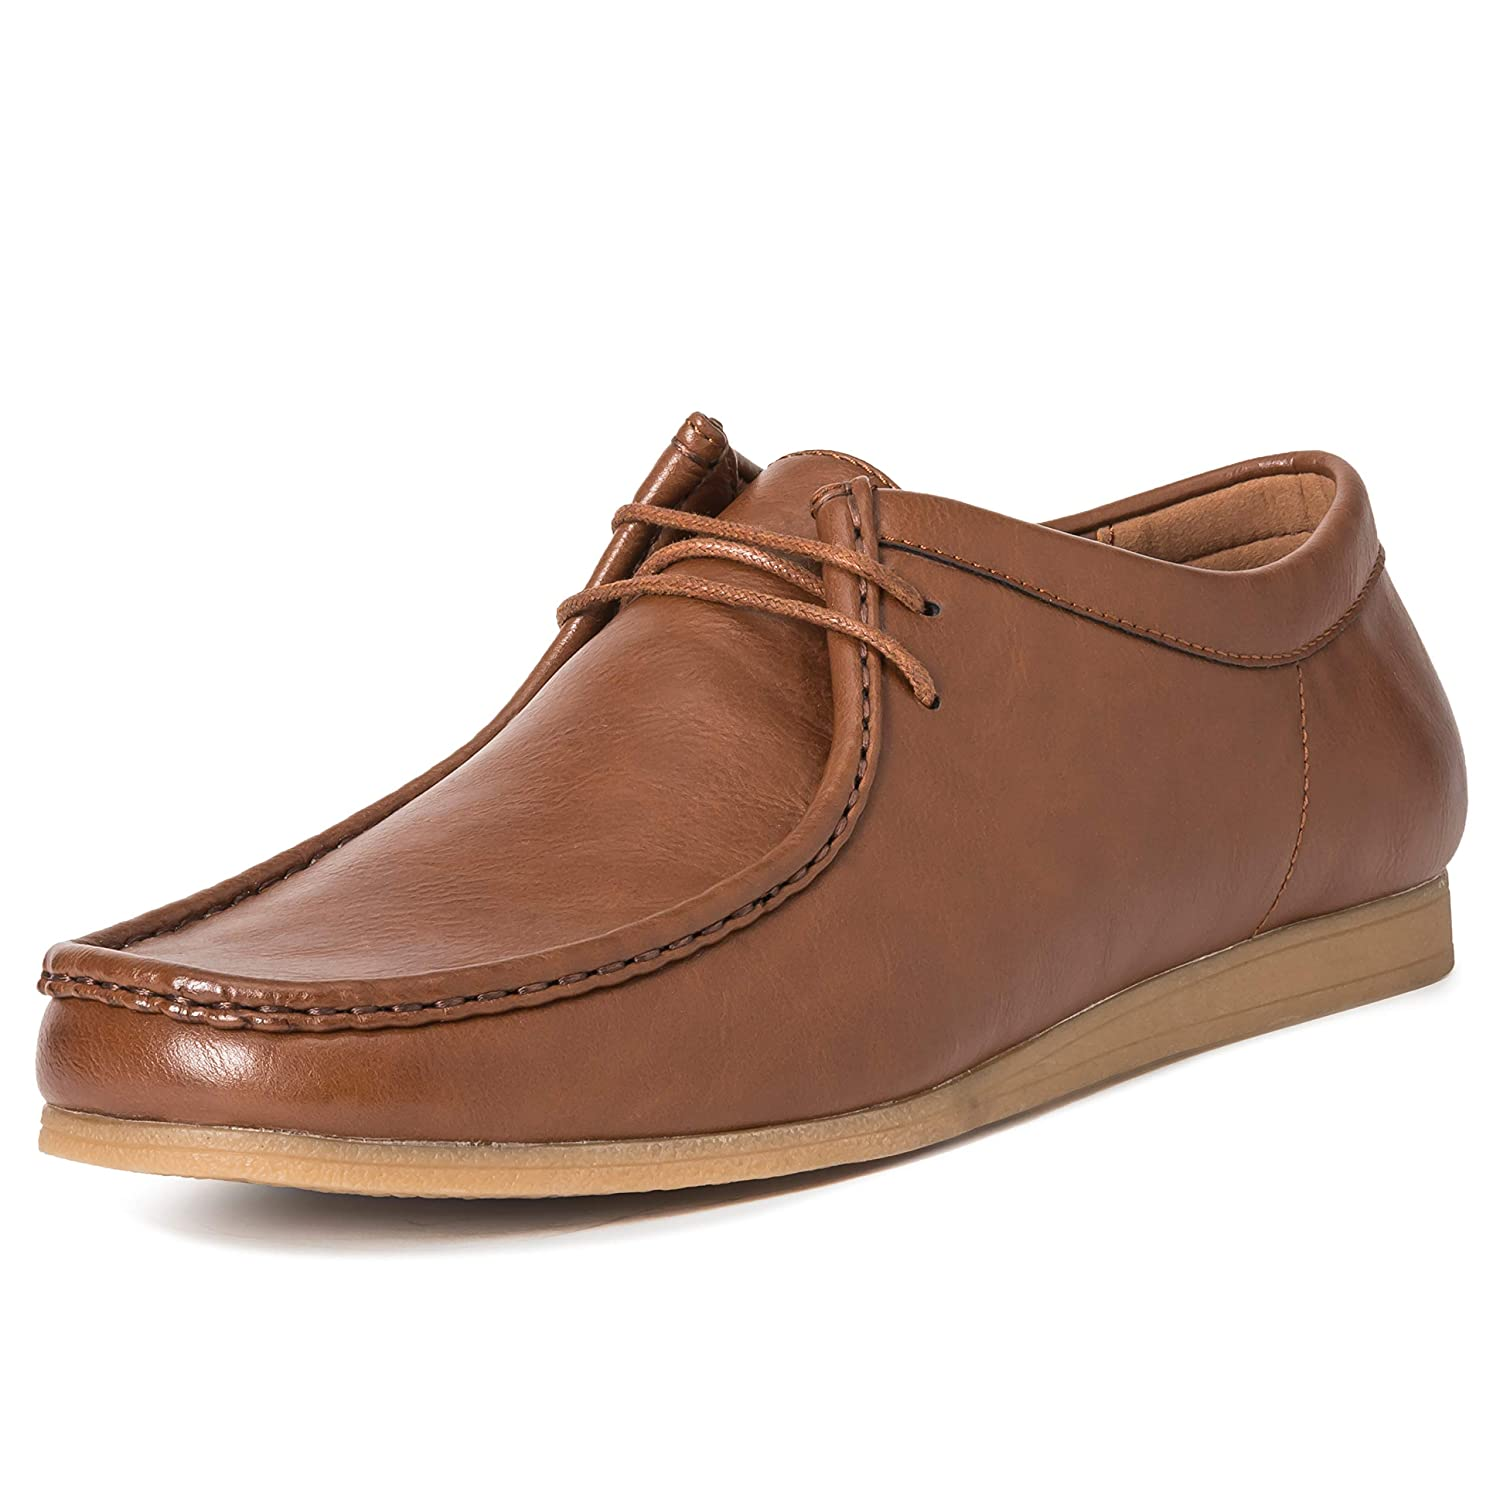 TALLA 46 EU. Hombres Queensberry Oscar Wallaby Smart Oficina Desierto Trabajo Loafer Chukka Formal Zapatos